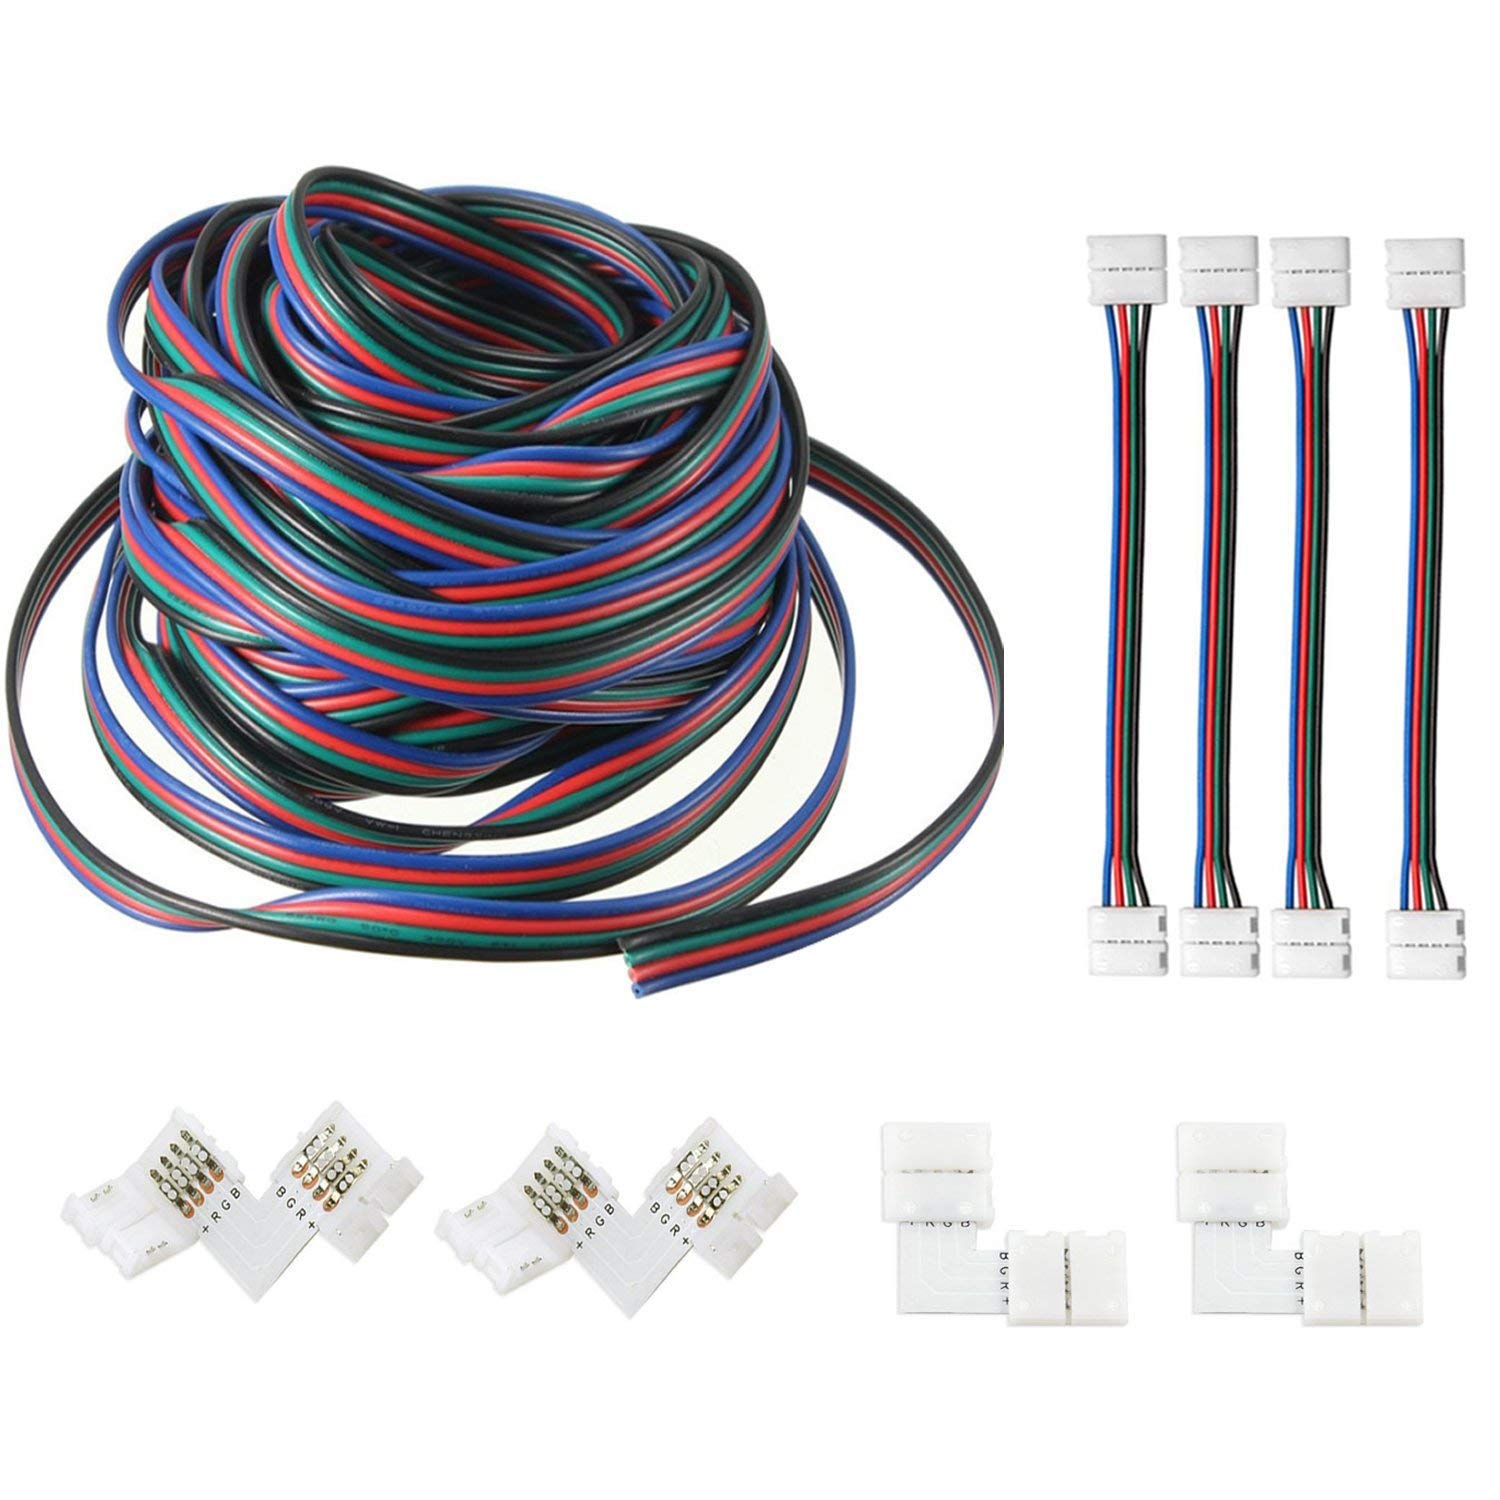 AREOUT RGB Extension Cable Wire Cord 4 Pin (39.3ft/12M), 5050 3528 Led Light Strip Connector Kit